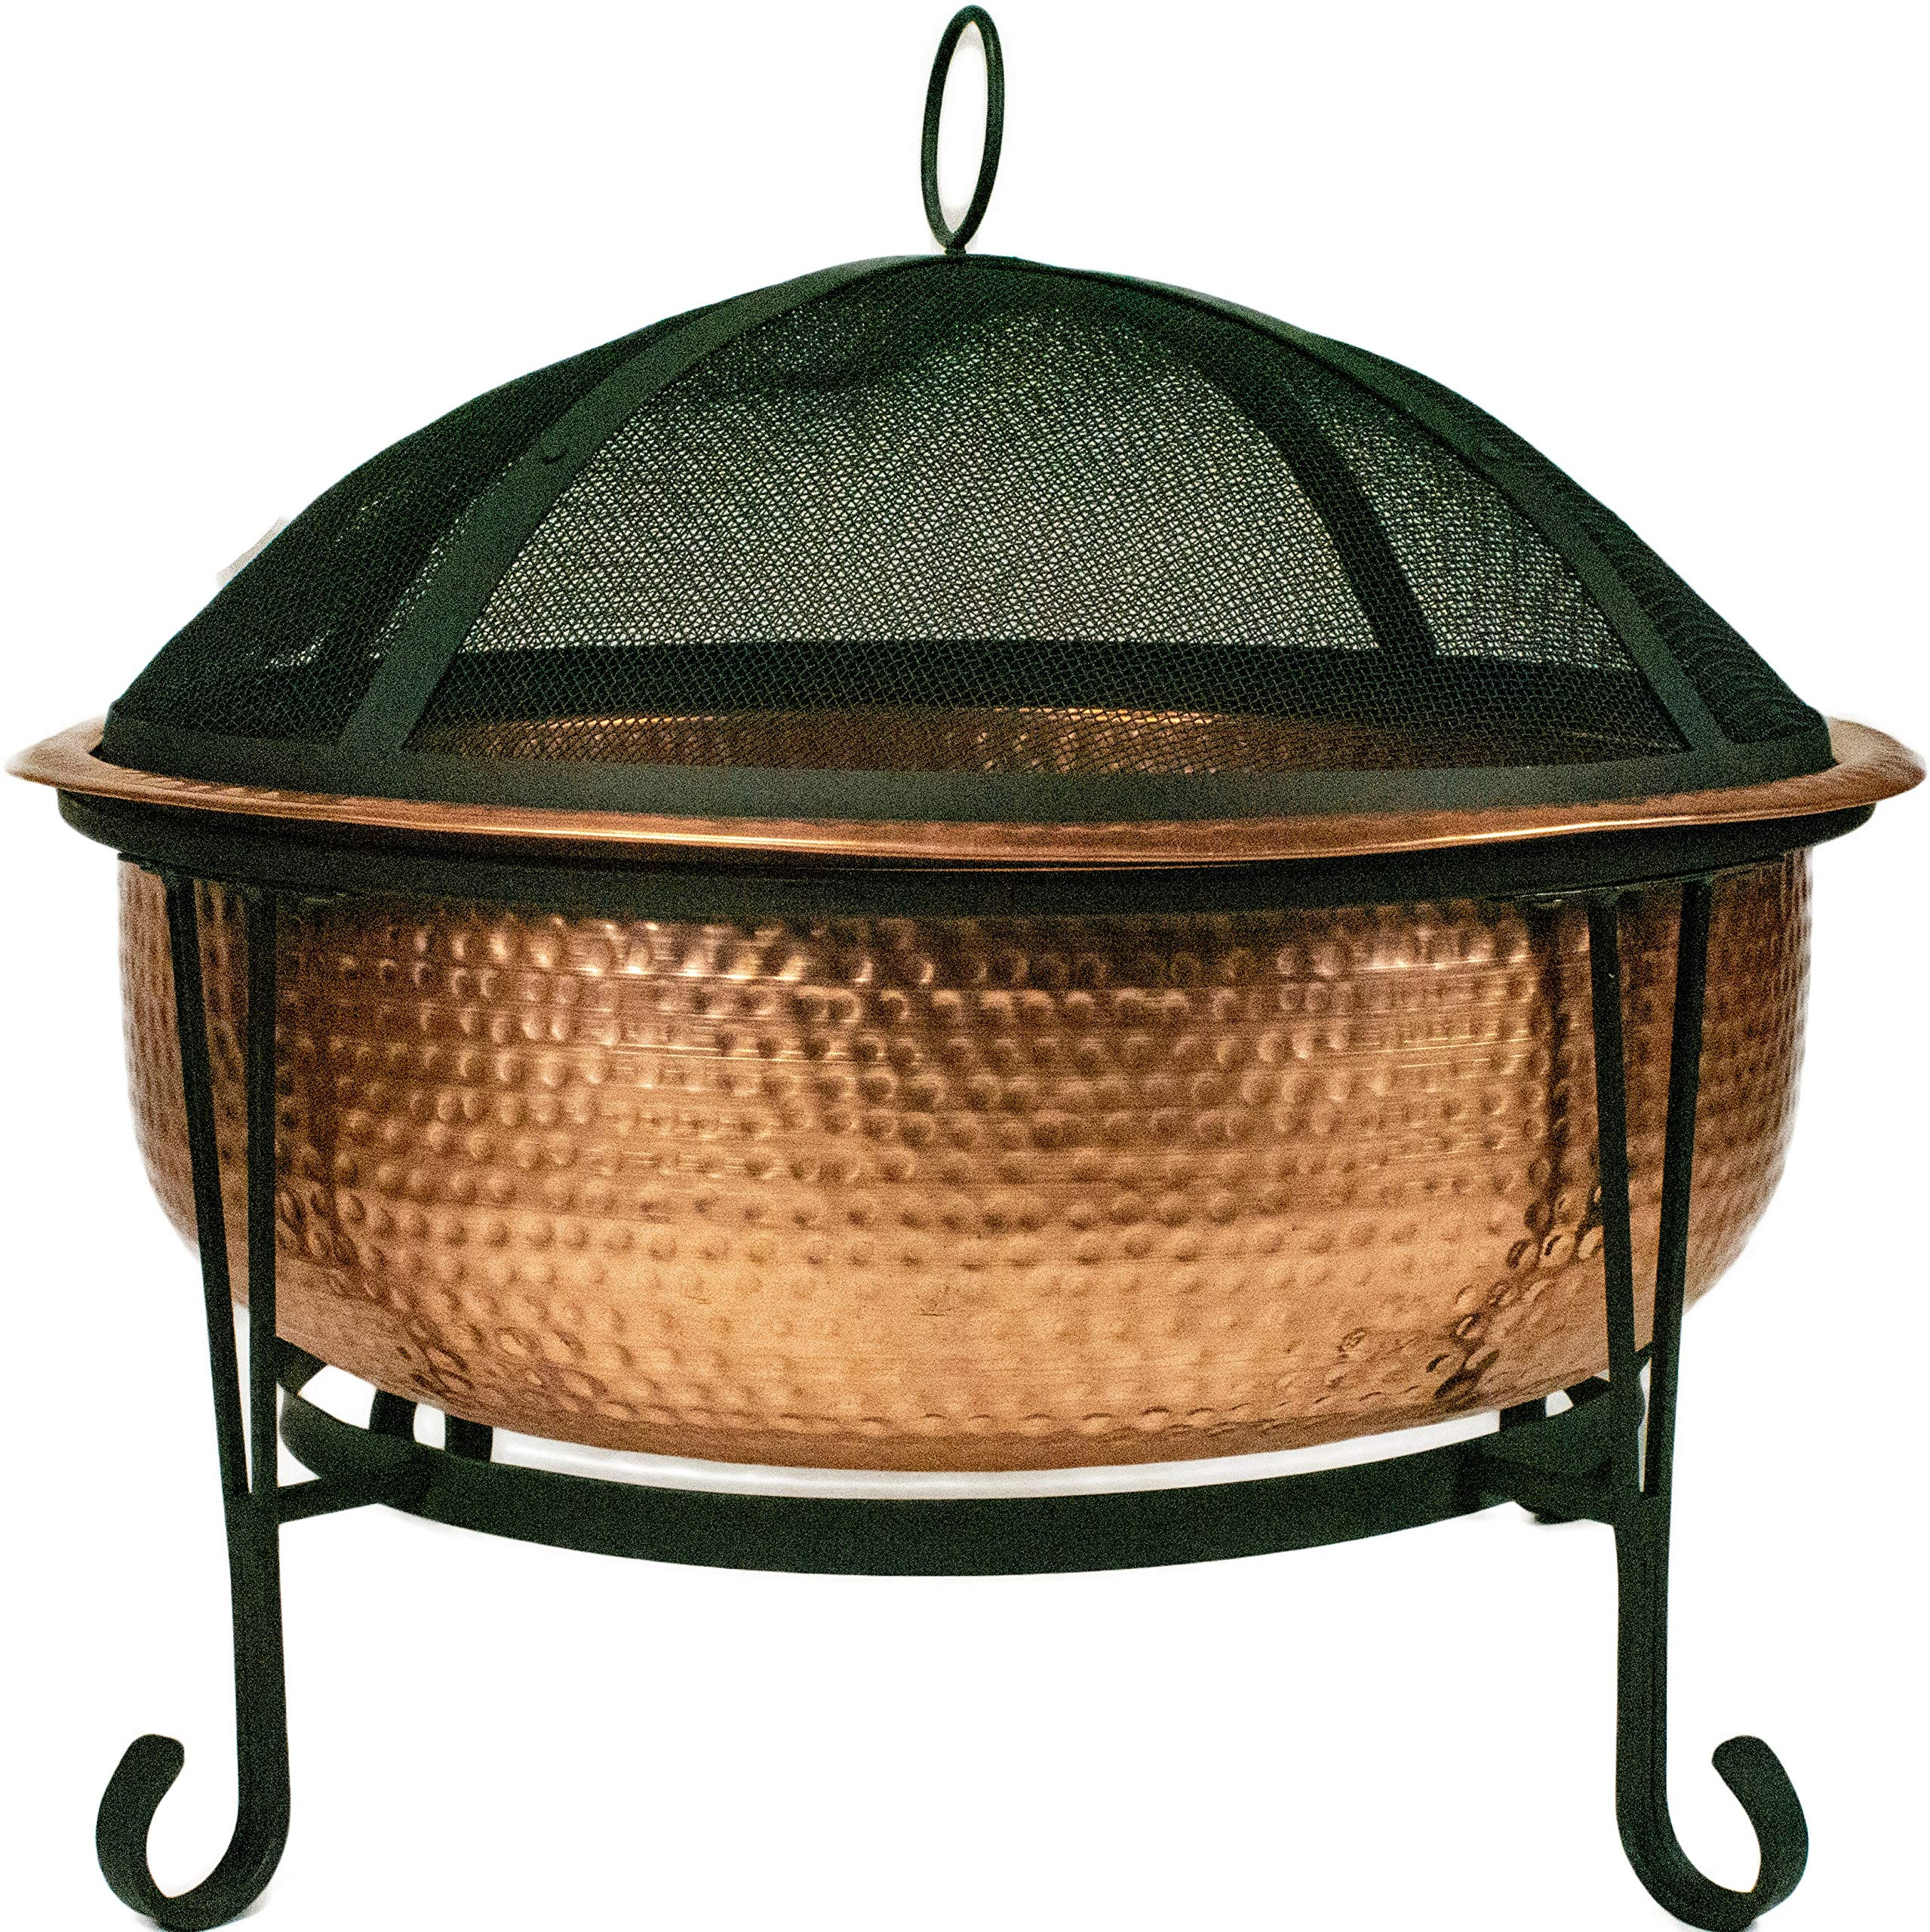 Global Outdoors 26.5'' Genuine Copper Deep Bowl Fire Pit with Screen, Cover and Safety Poker by Global Outdoors, Inc.